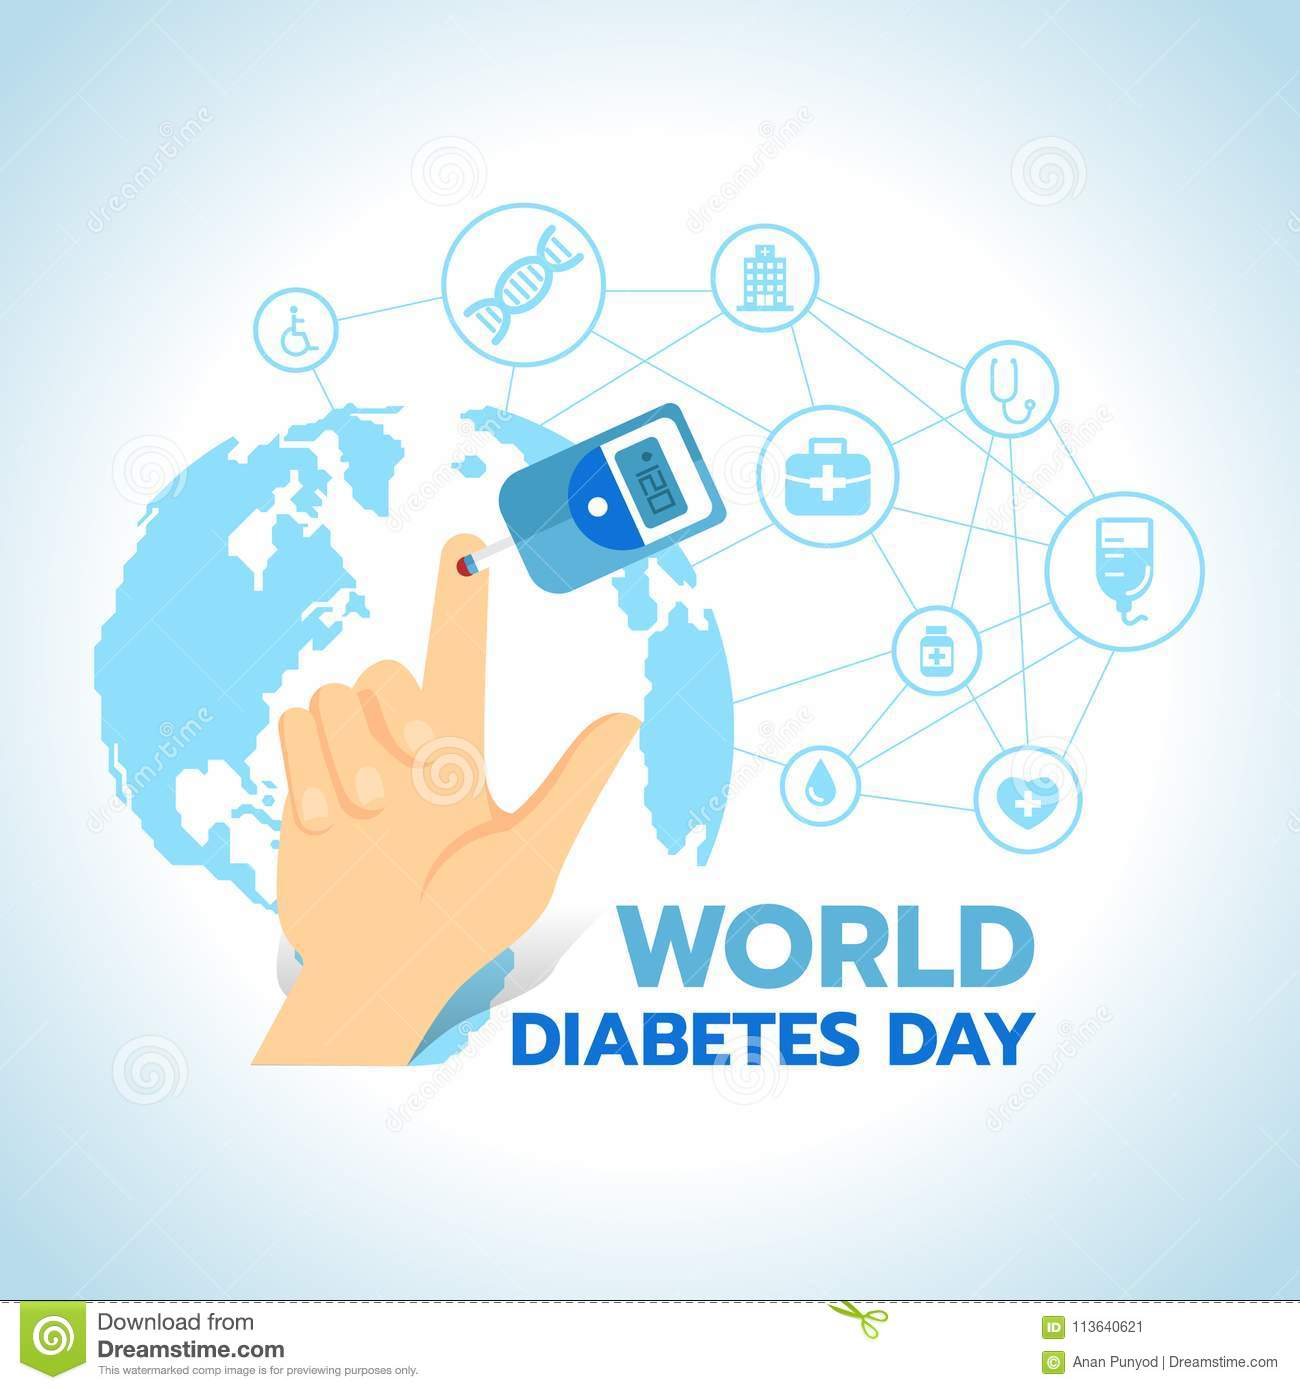 World diabetes day banner with blood sugar test and blood on the world diabetes day banner with blood sugar test and blood on the finger on blue world map with abstract connect link to medical icons sign vector design gumiabroncs Image collections